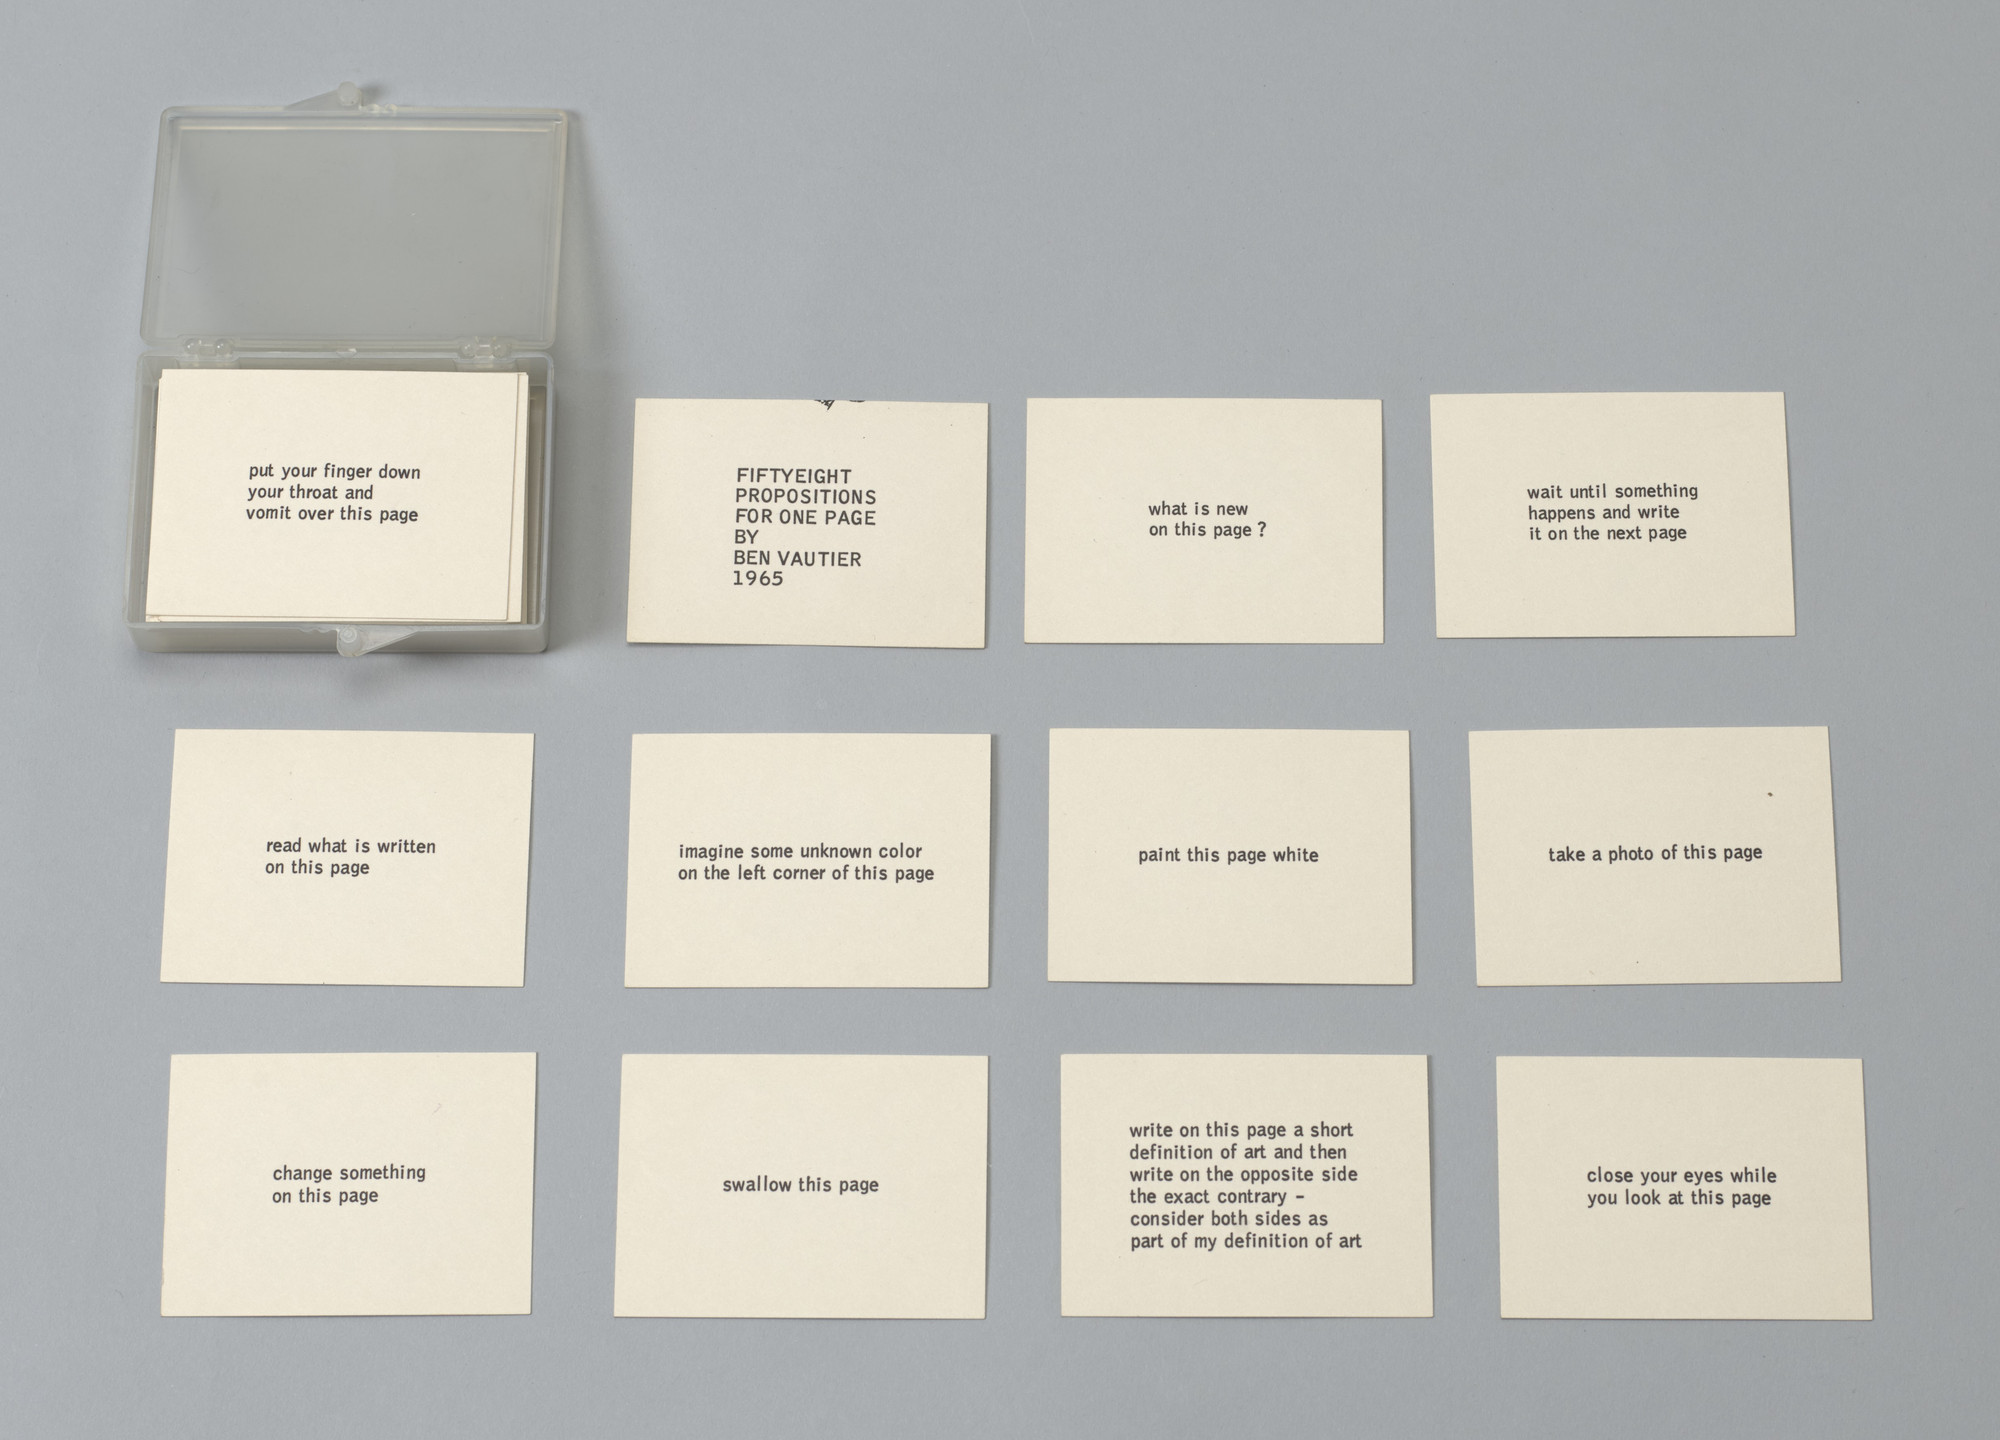 Ben Vautier. Fifty-Eight Propositions for One Page. 1965